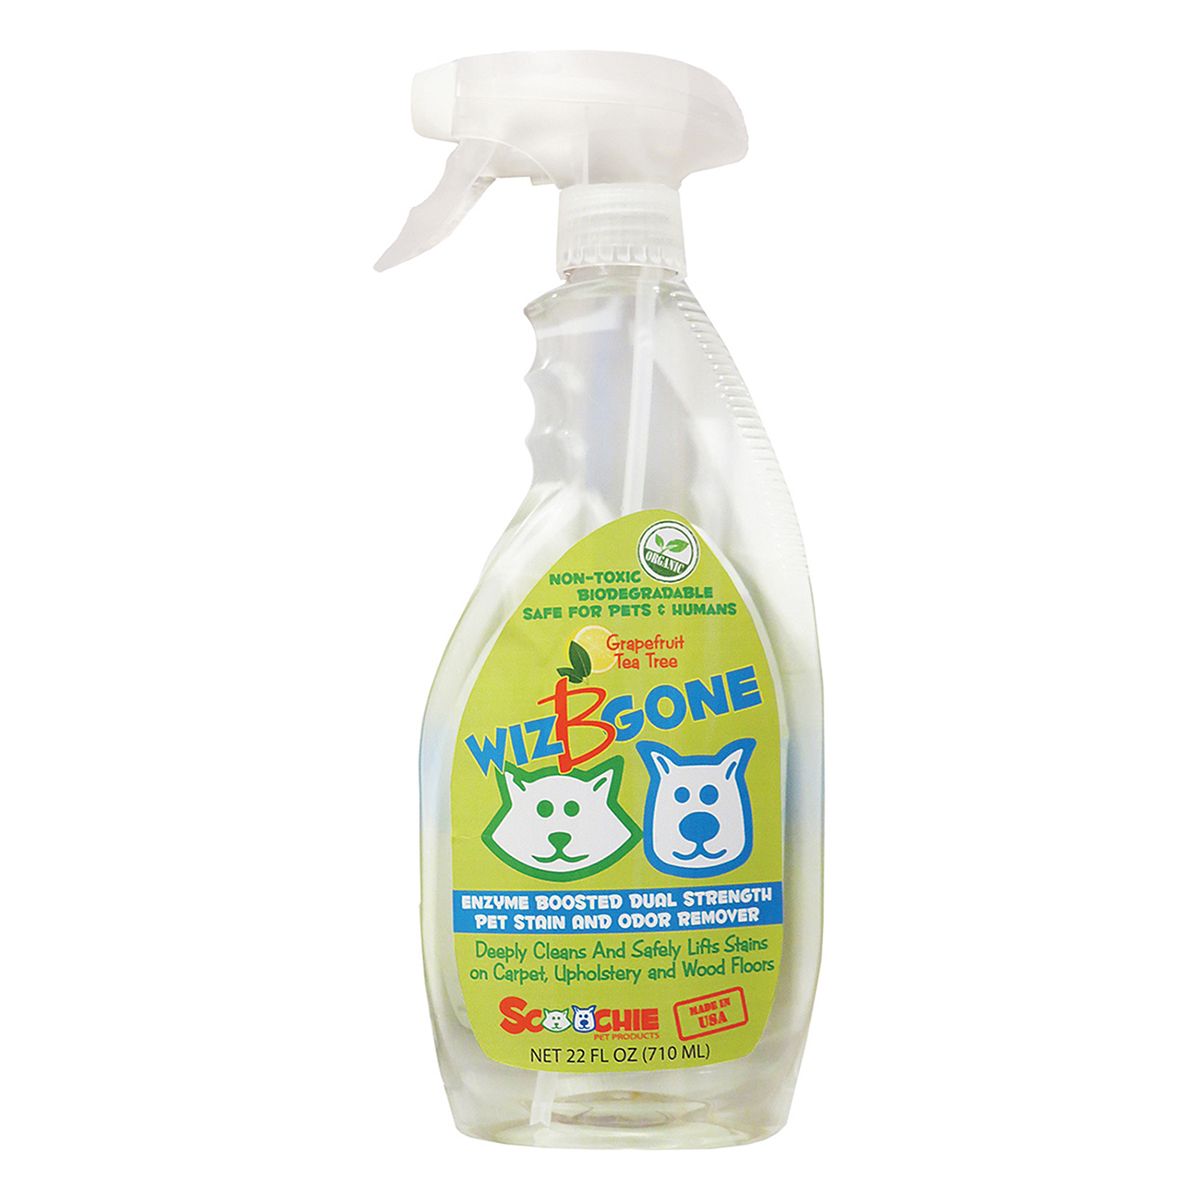 Wiz B Gone Pet Stain and Odor Remover at Walmart